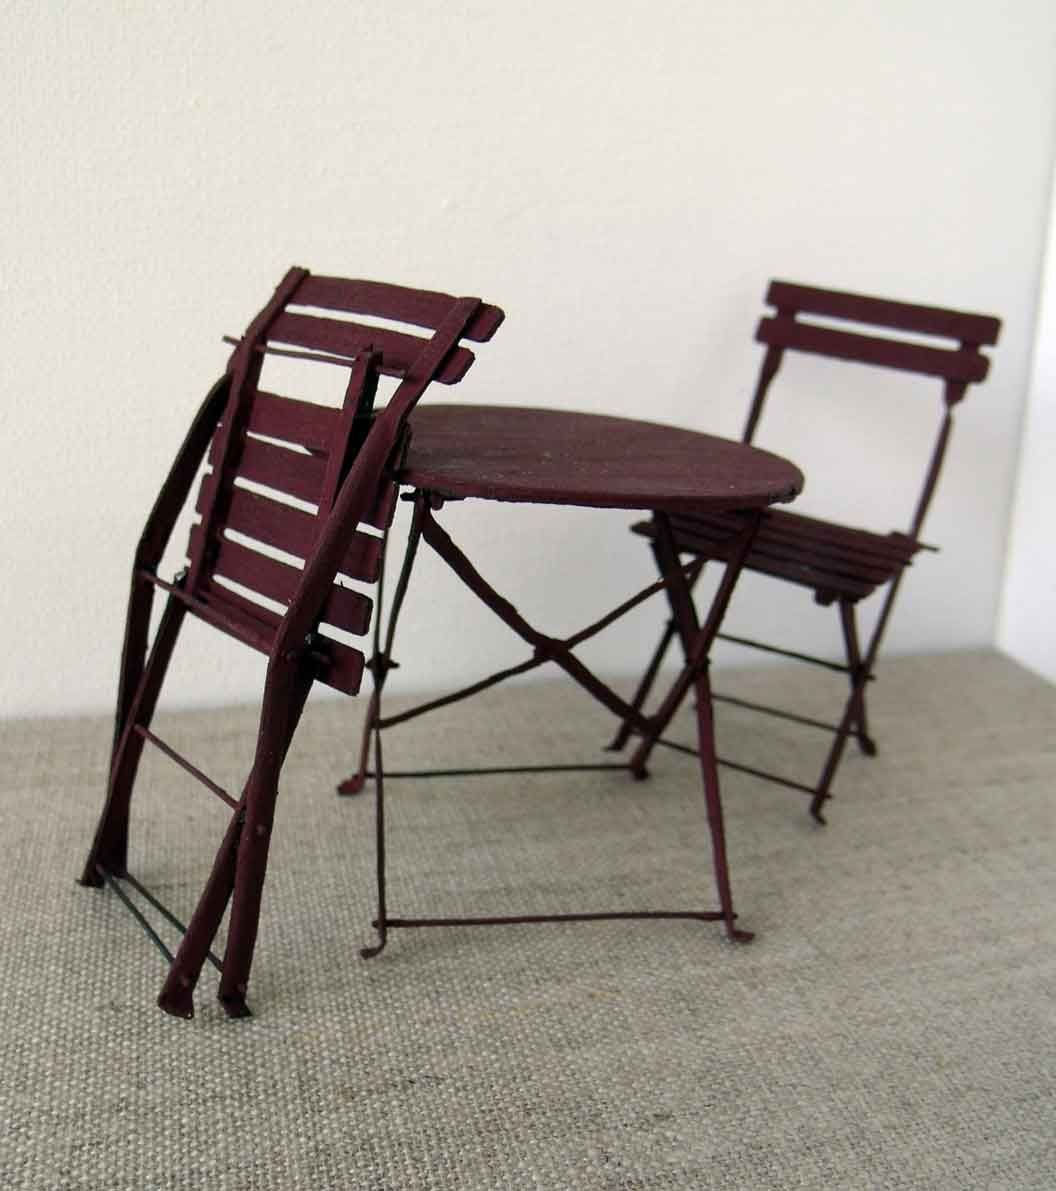 mesa y sillas | Miniature Furniture Tutorials | Pinterest ...